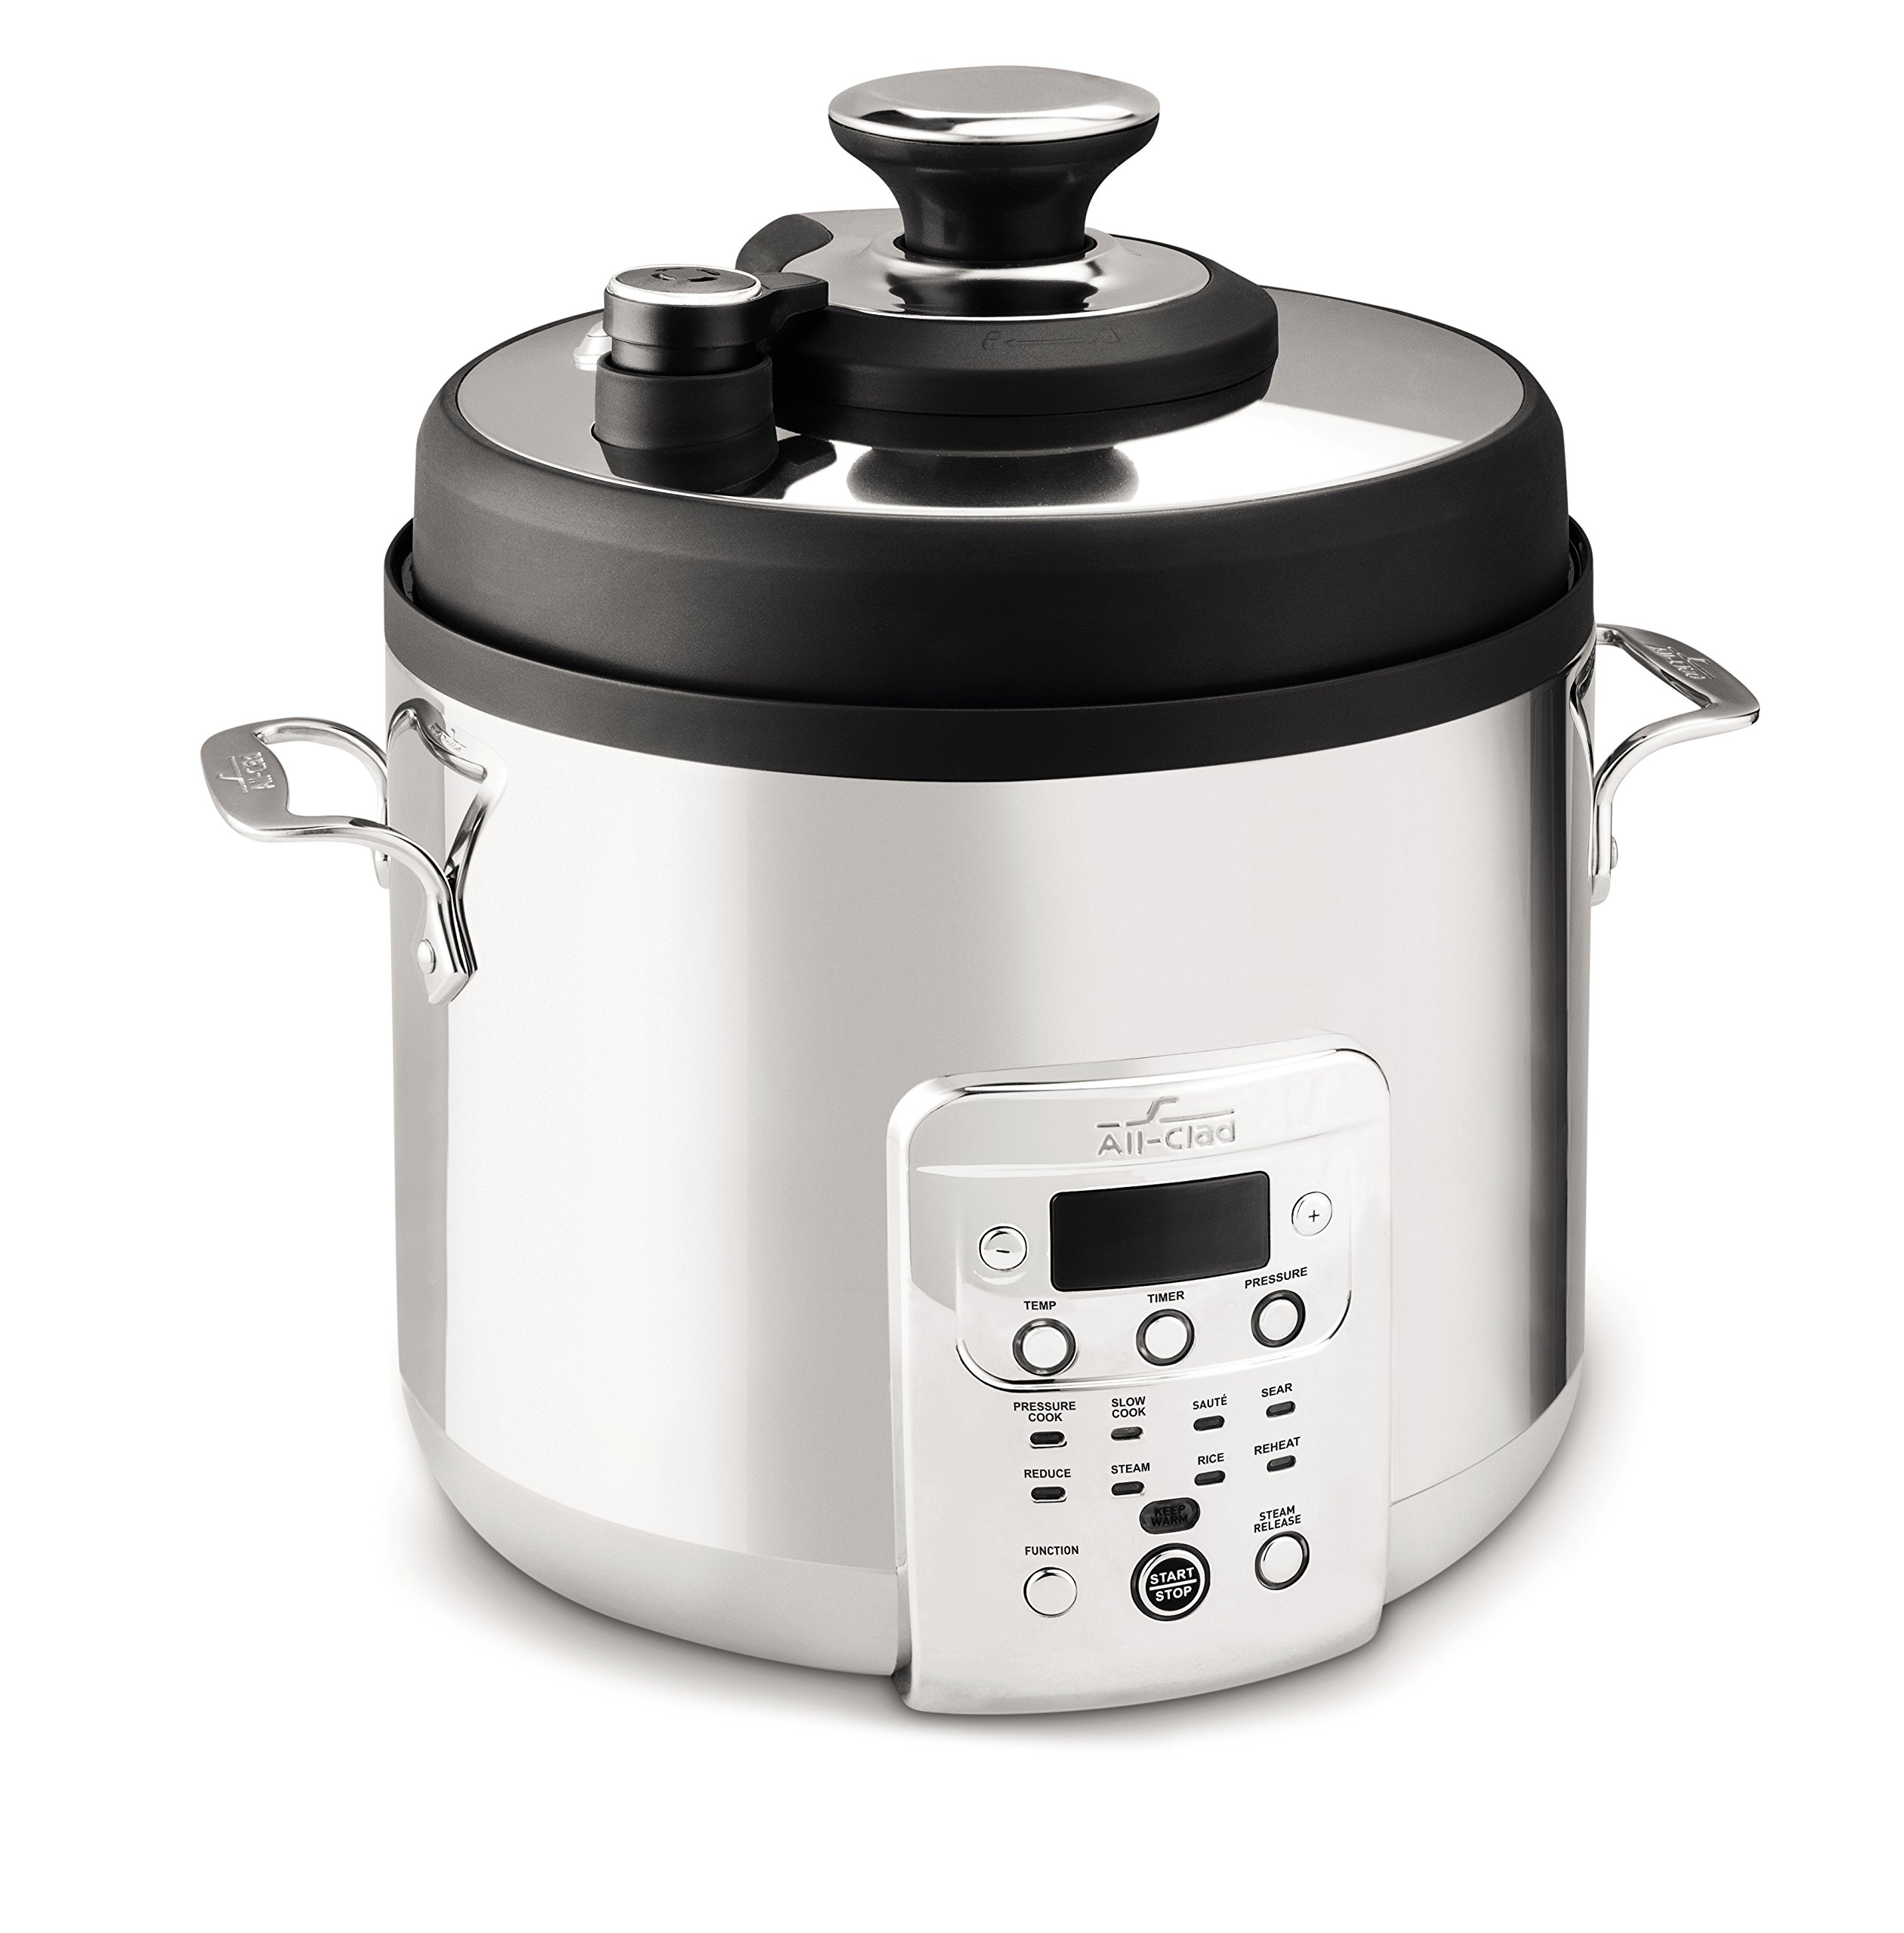 All-Clad CZ720051 Electric Pressure Cooker with Dishwasher safe Nonstick Ceramic Pot and 8 pre-set cooking modes, 6-Quart, Silver